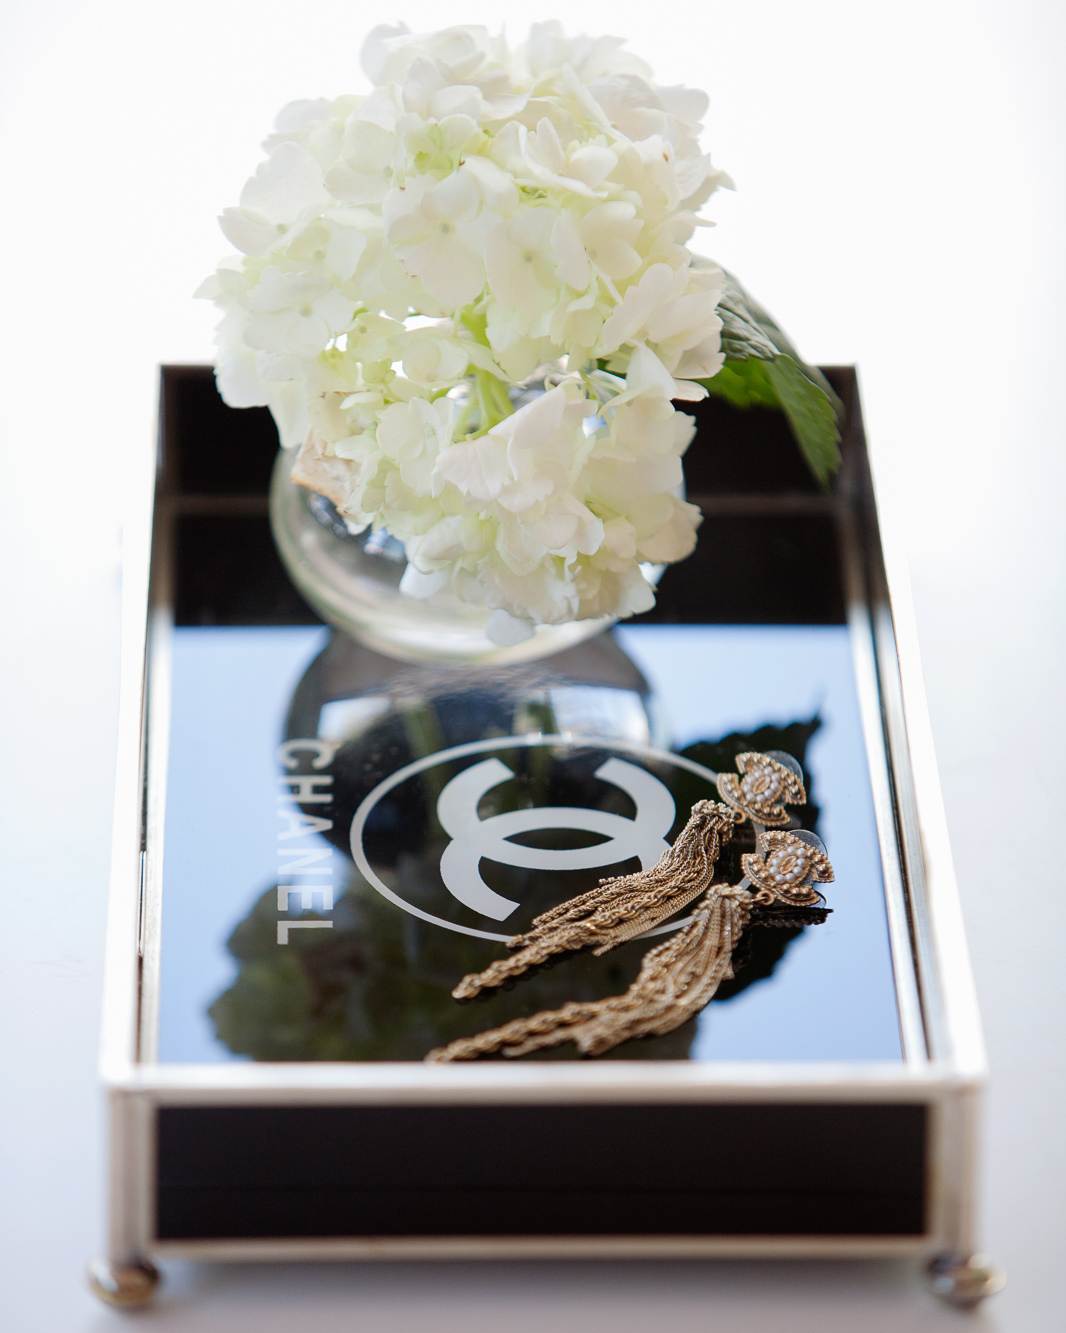 Chanel jewelry tray with gold, drapey earrings and white hydrangeas.